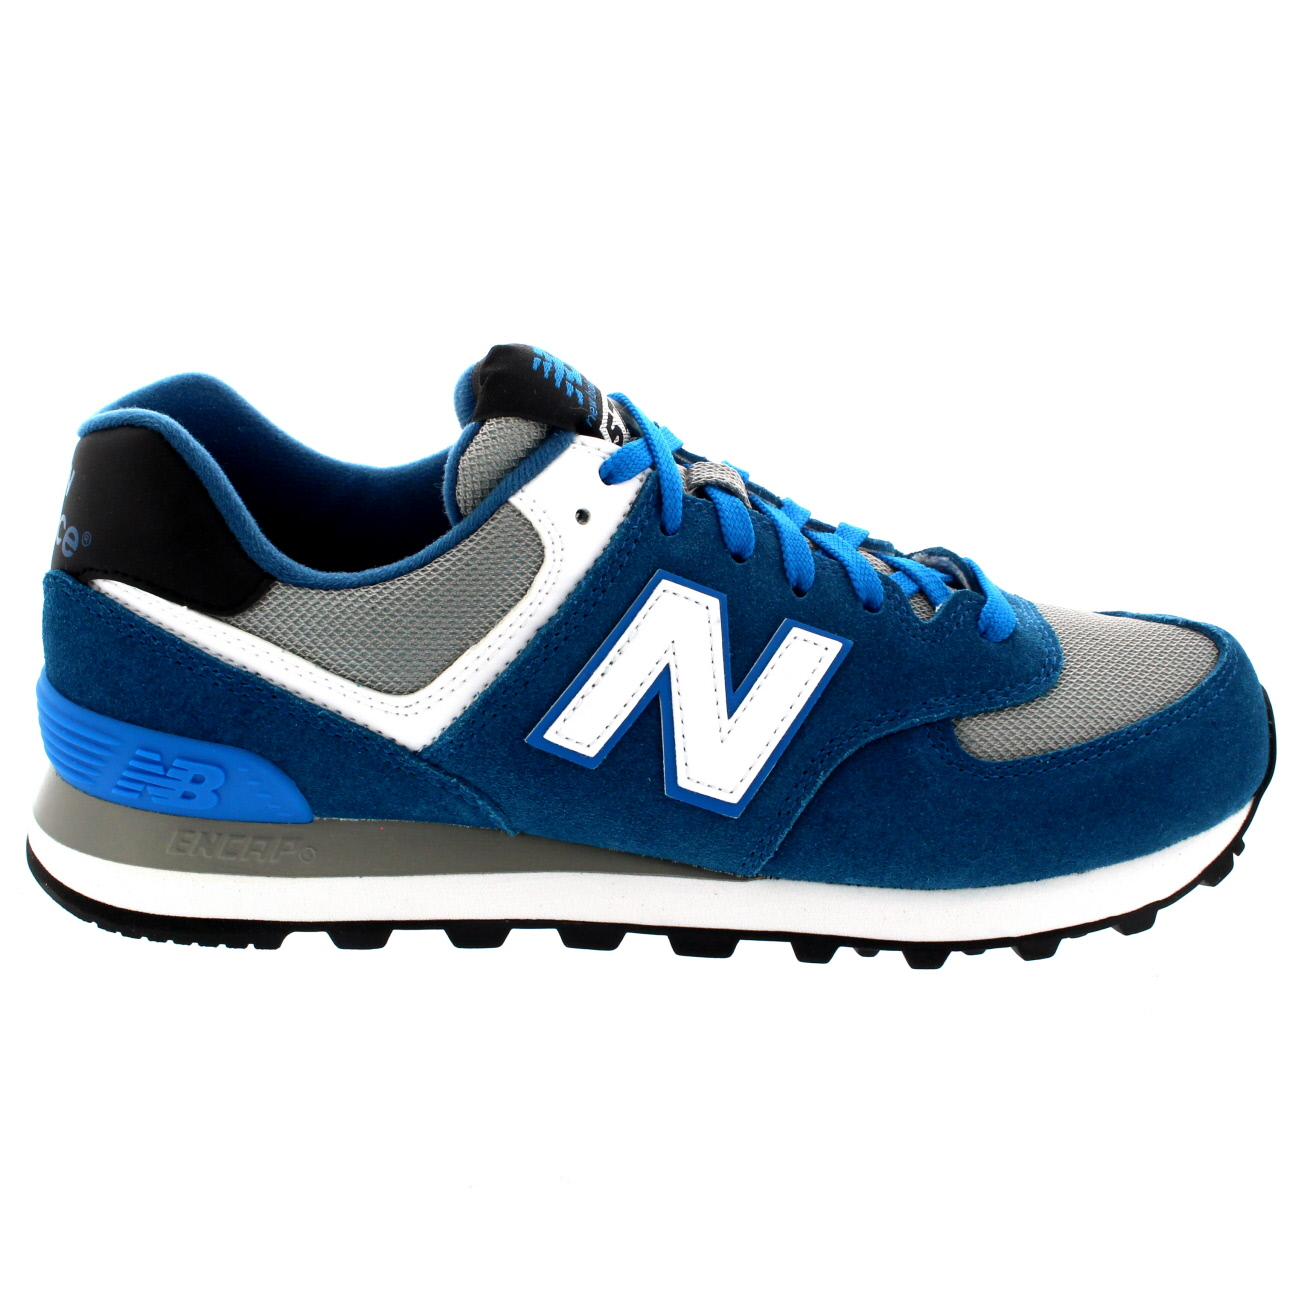 homme new balance 574 classic low top daim sport lacets running baskets uk 7 12 ebay. Black Bedroom Furniture Sets. Home Design Ideas